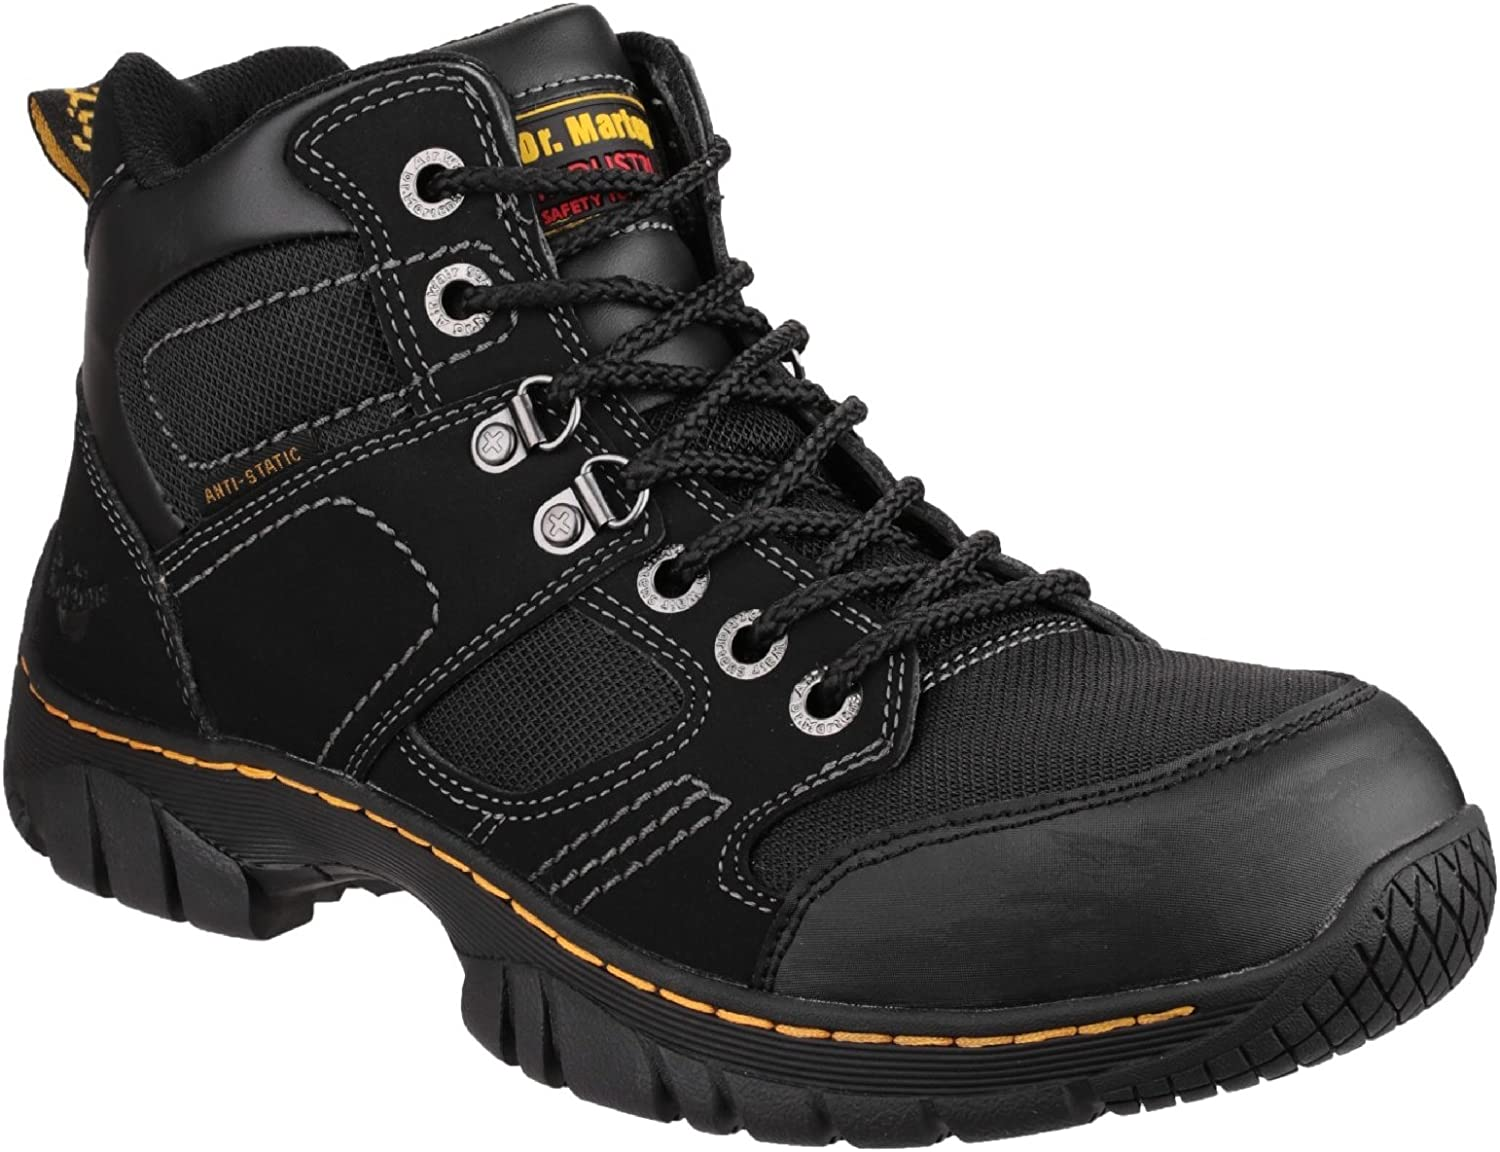 Dr Martens Benham Safety Boots Mens Lightweight Hiker Steel Toe Cap Work Shoes